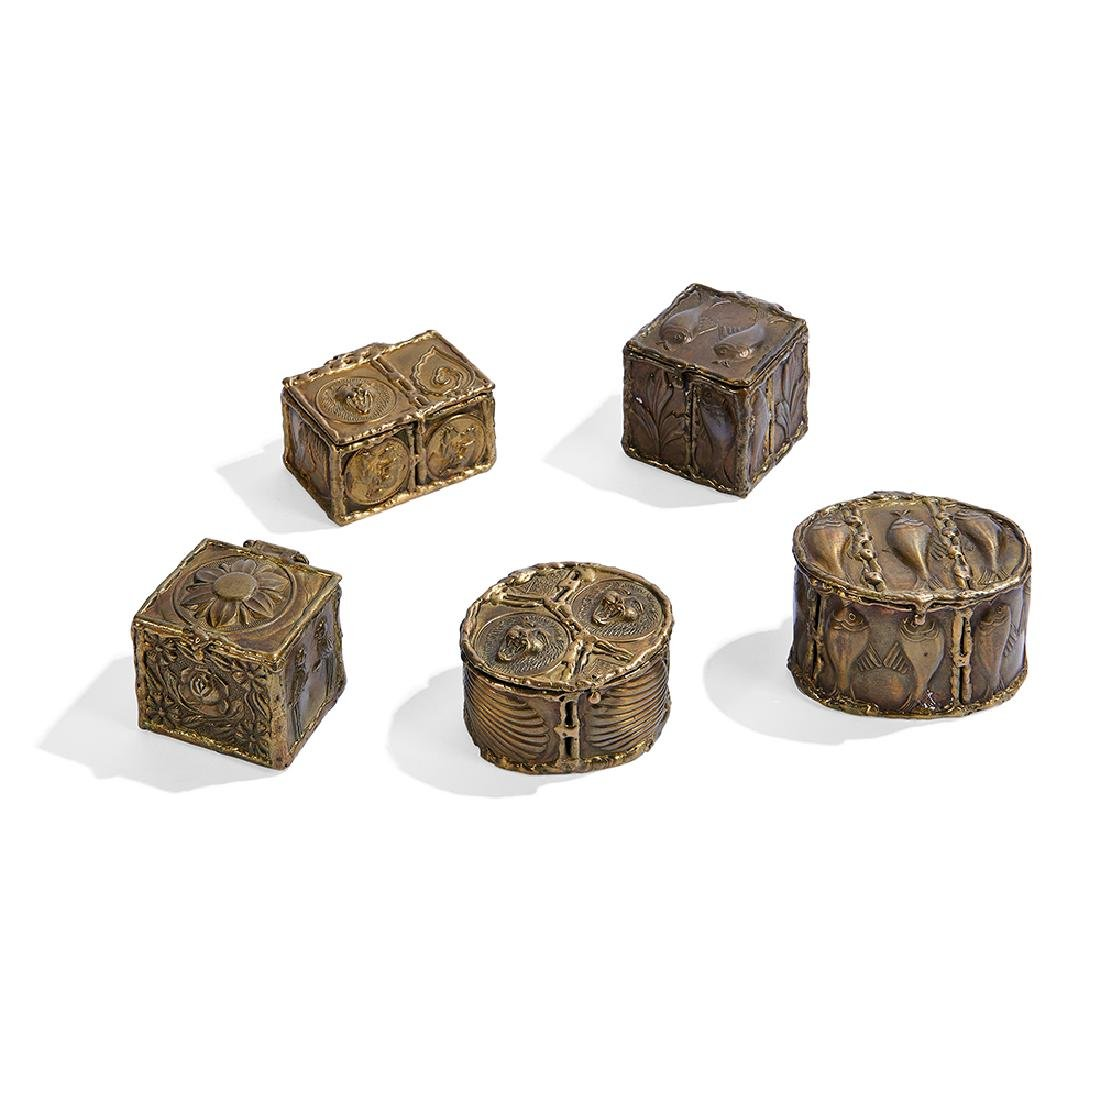 Pal Kepenyes boxes, set of five